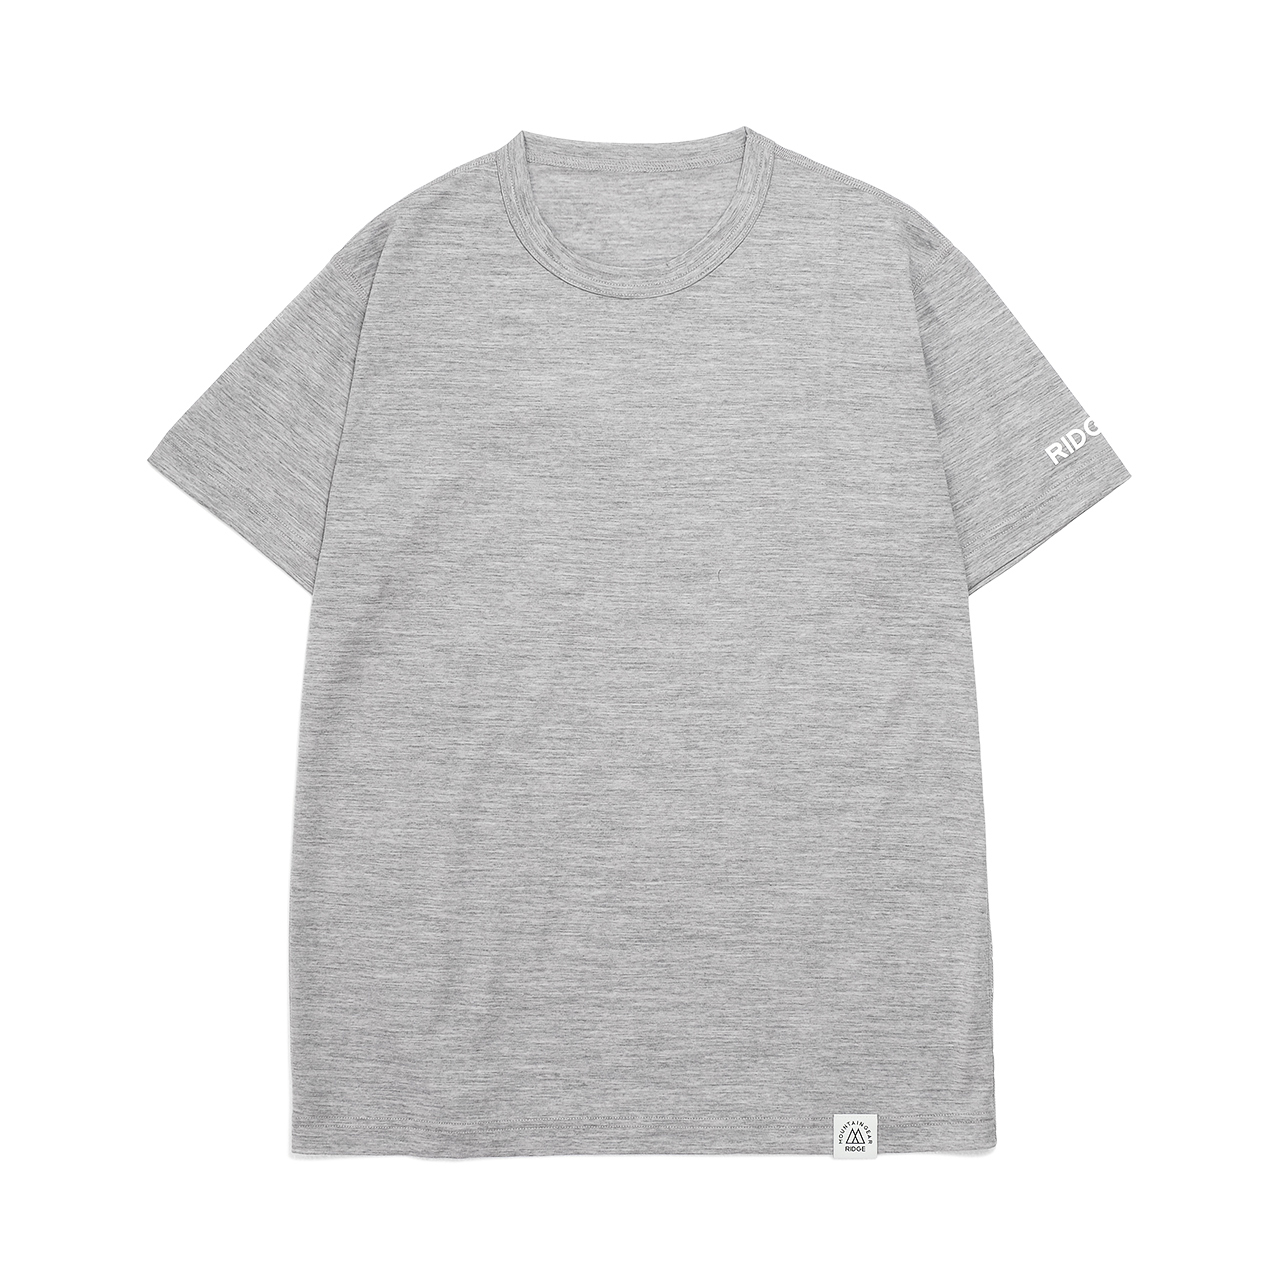 Merino Basic Tee Short Sleeve